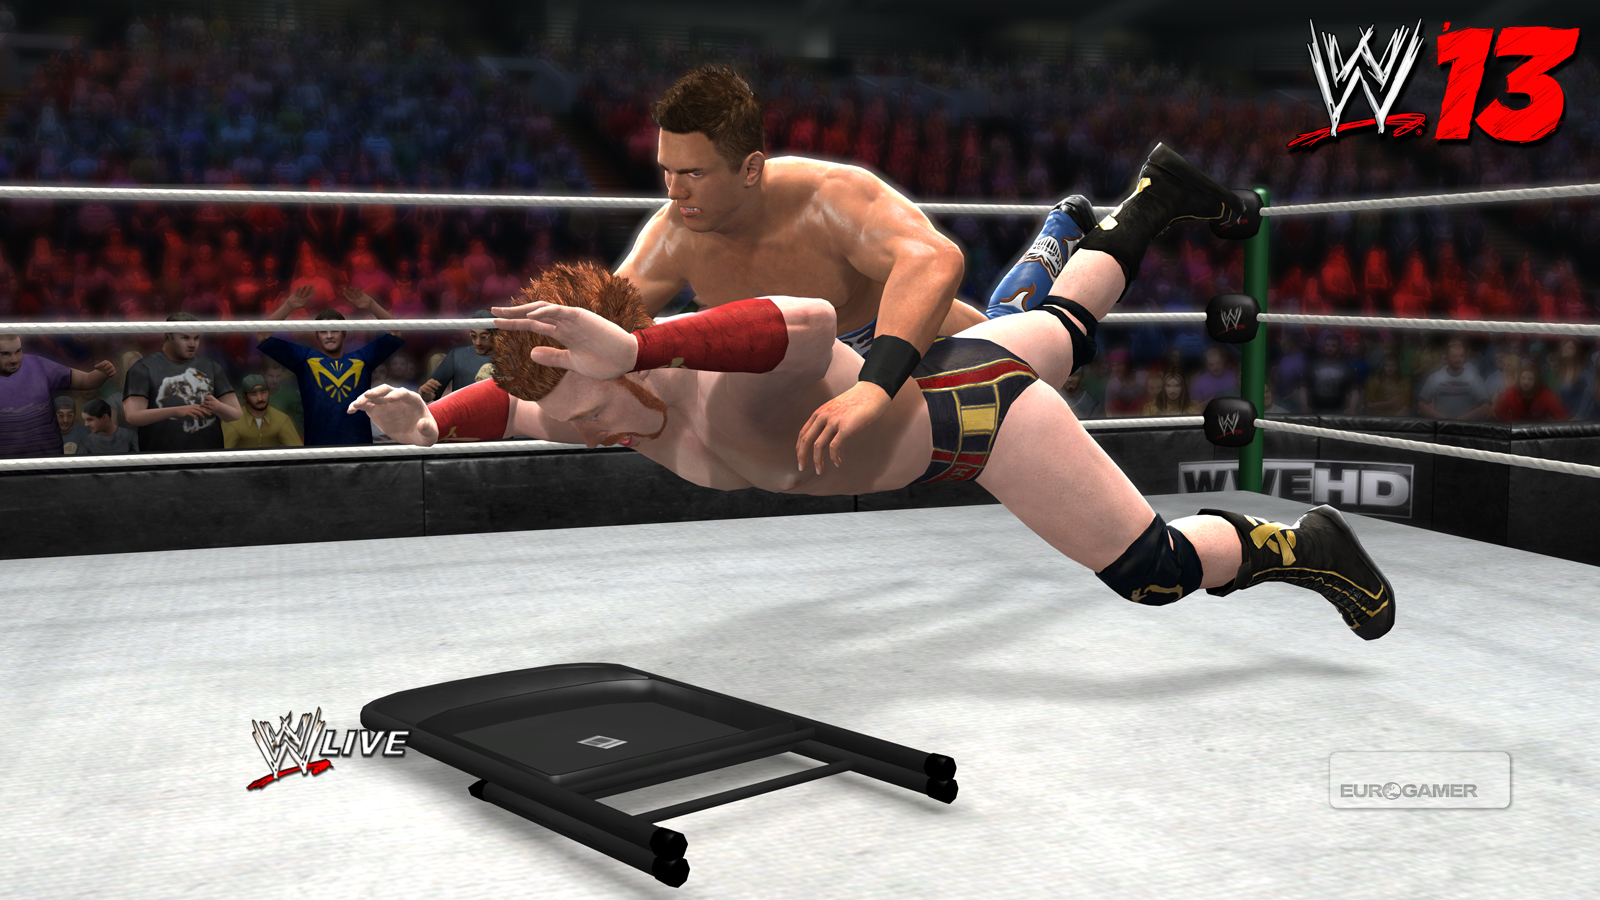 Wwe 12 Game Free Download For Pc Full Version Softonic Pc